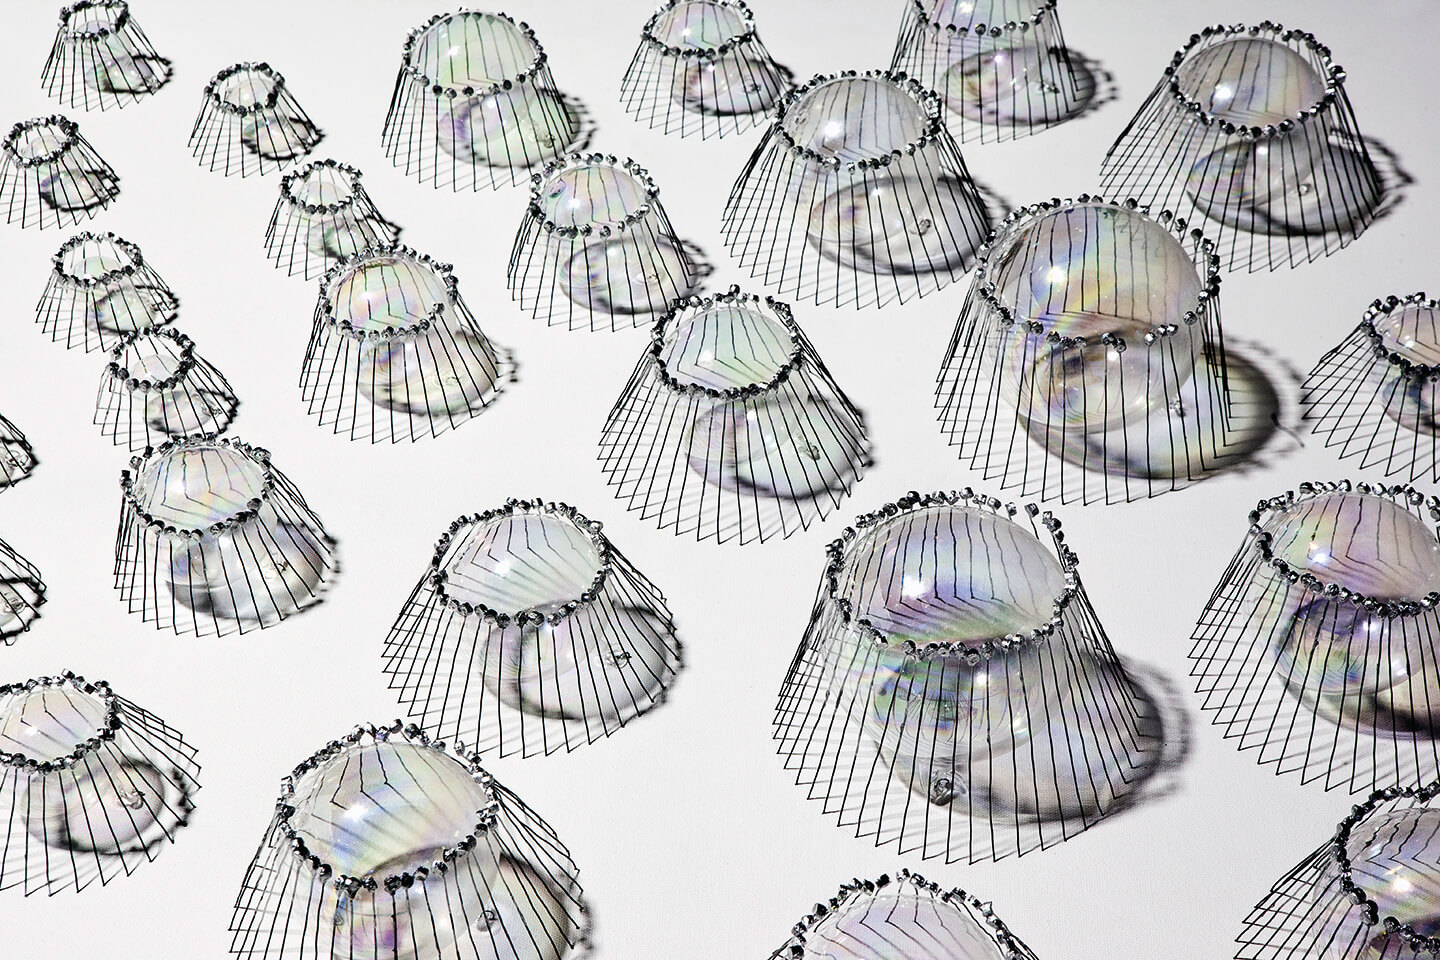 Jelly Fish, 2013, bottle corks, wire, glass balls, car paint on canvas